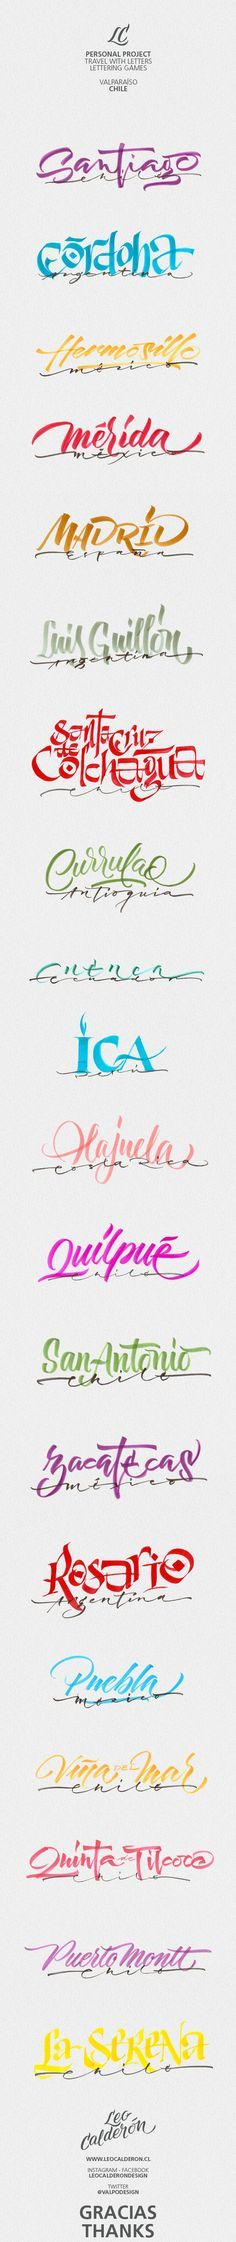 Viajar con Letras // Travel with letters on Behance